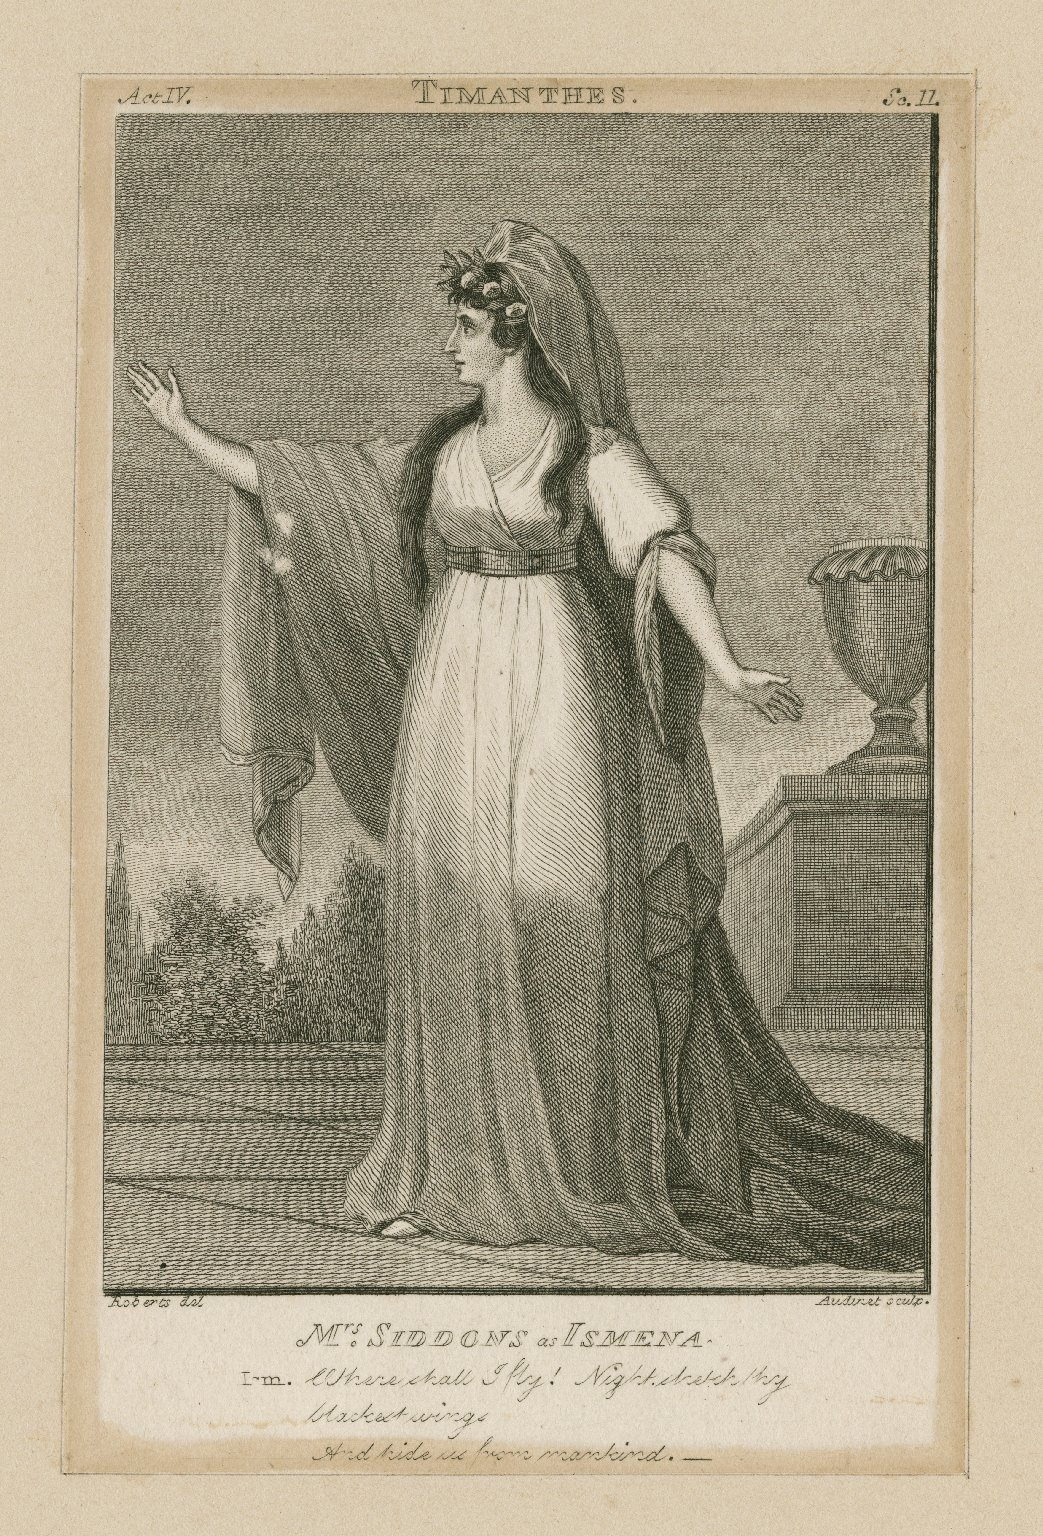 Mrs. Siddons as Ismena [graphic] : [in Hoole's] Timanthes, act IV, sc. 11 : Ism.: Where shall I fly! ... / Roberts, del. ; Audinet, sculp.